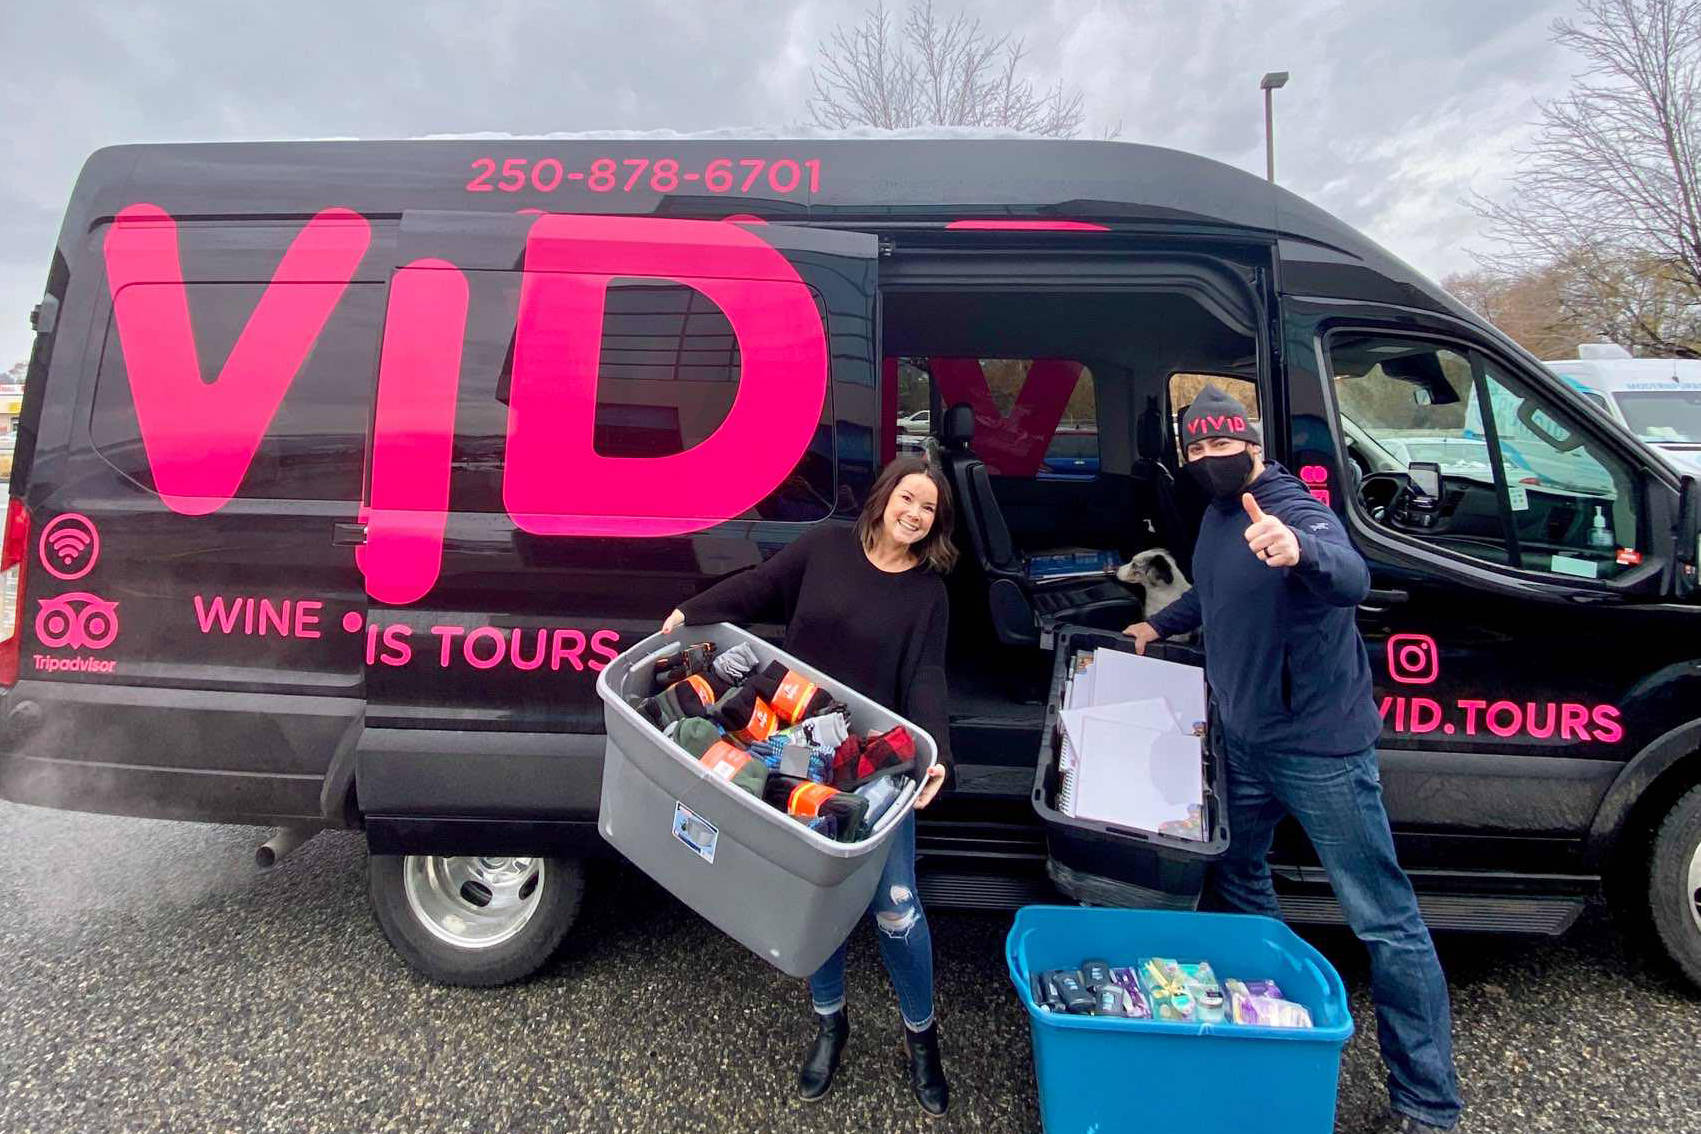 Vivid Tours is launching its 12 Days of Kindness Campaign in support of family organizations in Kelowna, B.C. (Contributed)